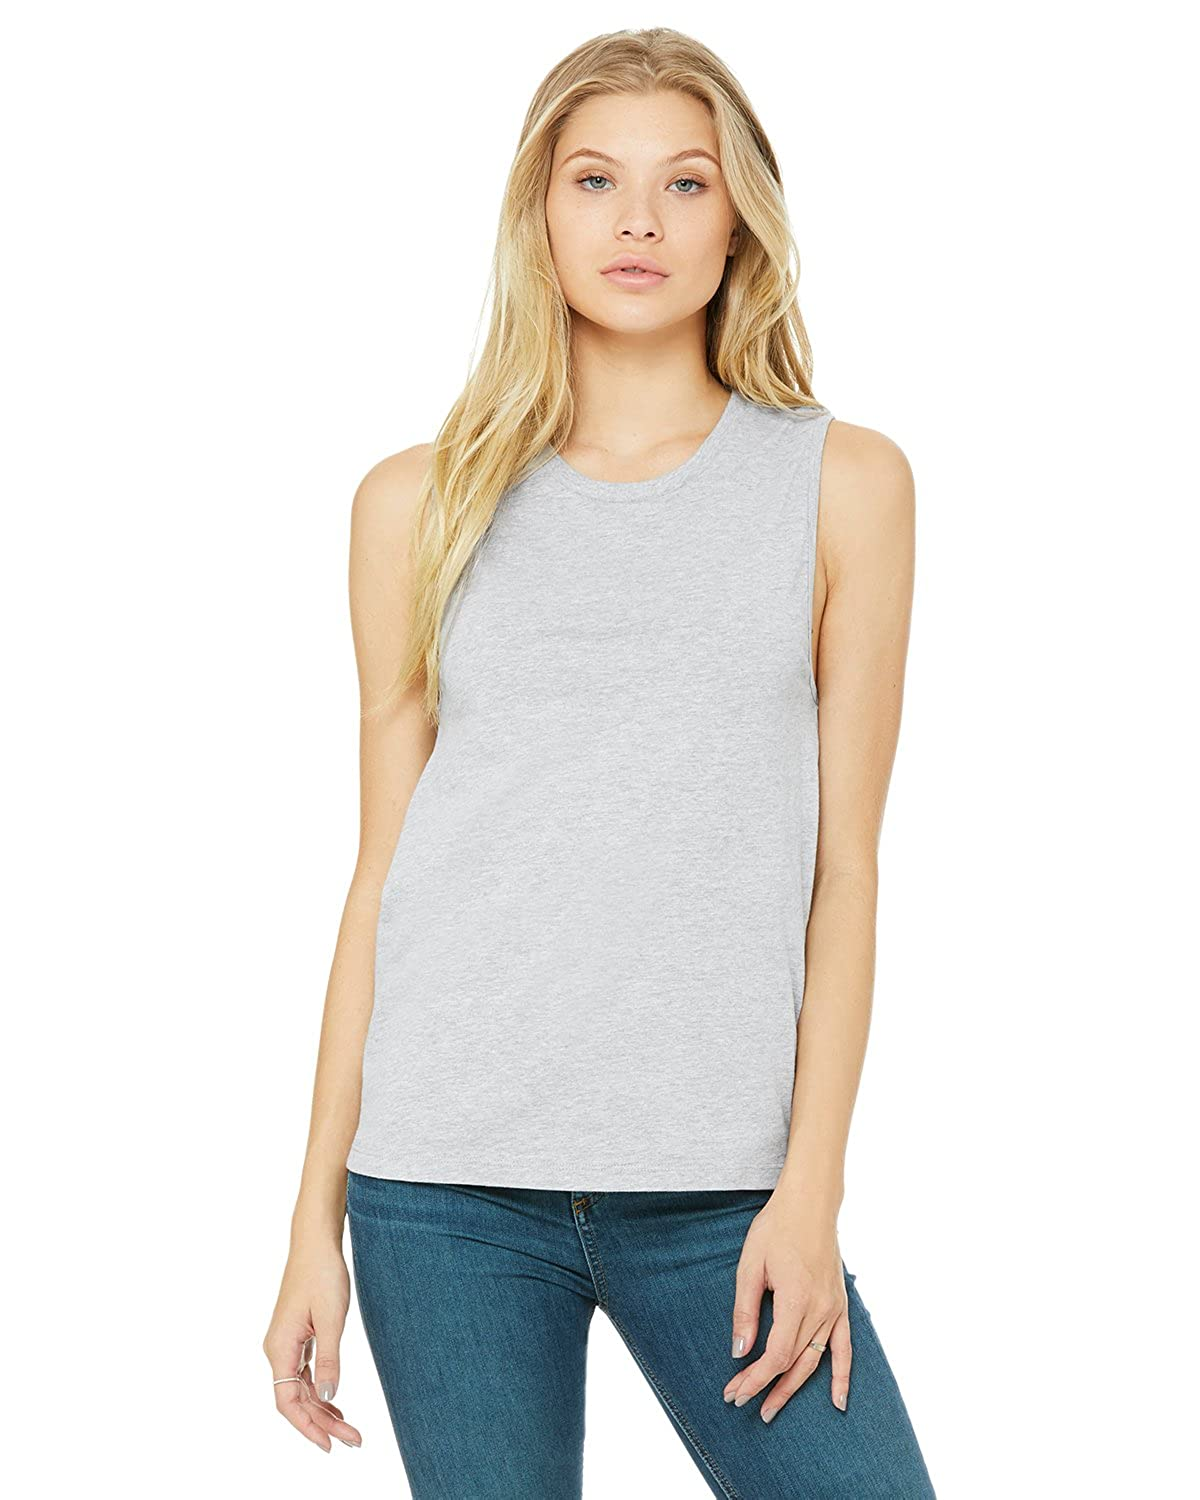 c6d0f7c21db44 Top 10 wholesale Low Cut Side Tops - Chinabrands.com